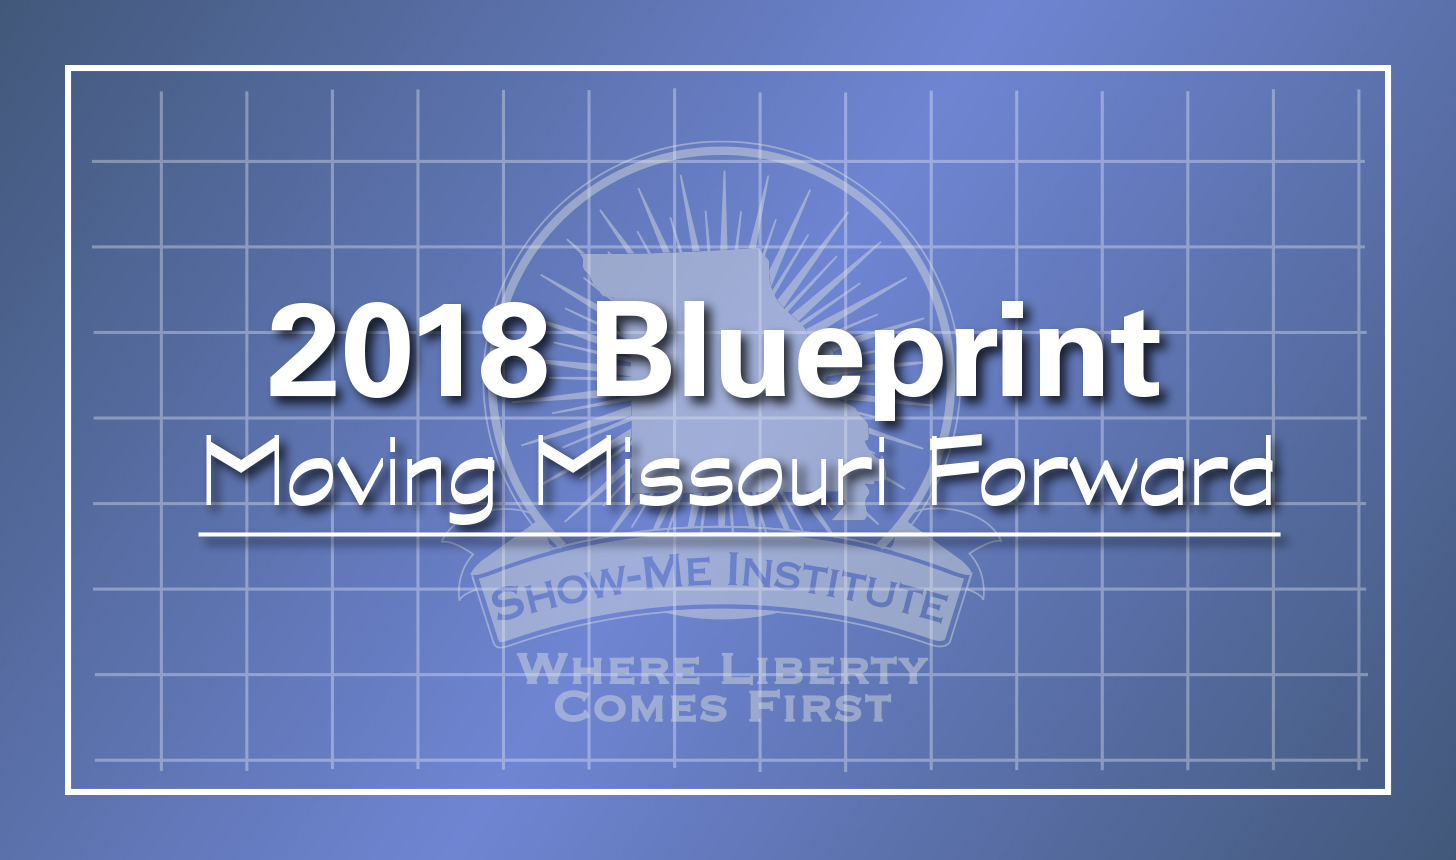 2018 blueprint moving missouri forward show me institute the show me institutes 2018 blueprint moving missouri forward presents 16 policy ideas covering a broad range of issuesfrom education to health care malvernweather Gallery